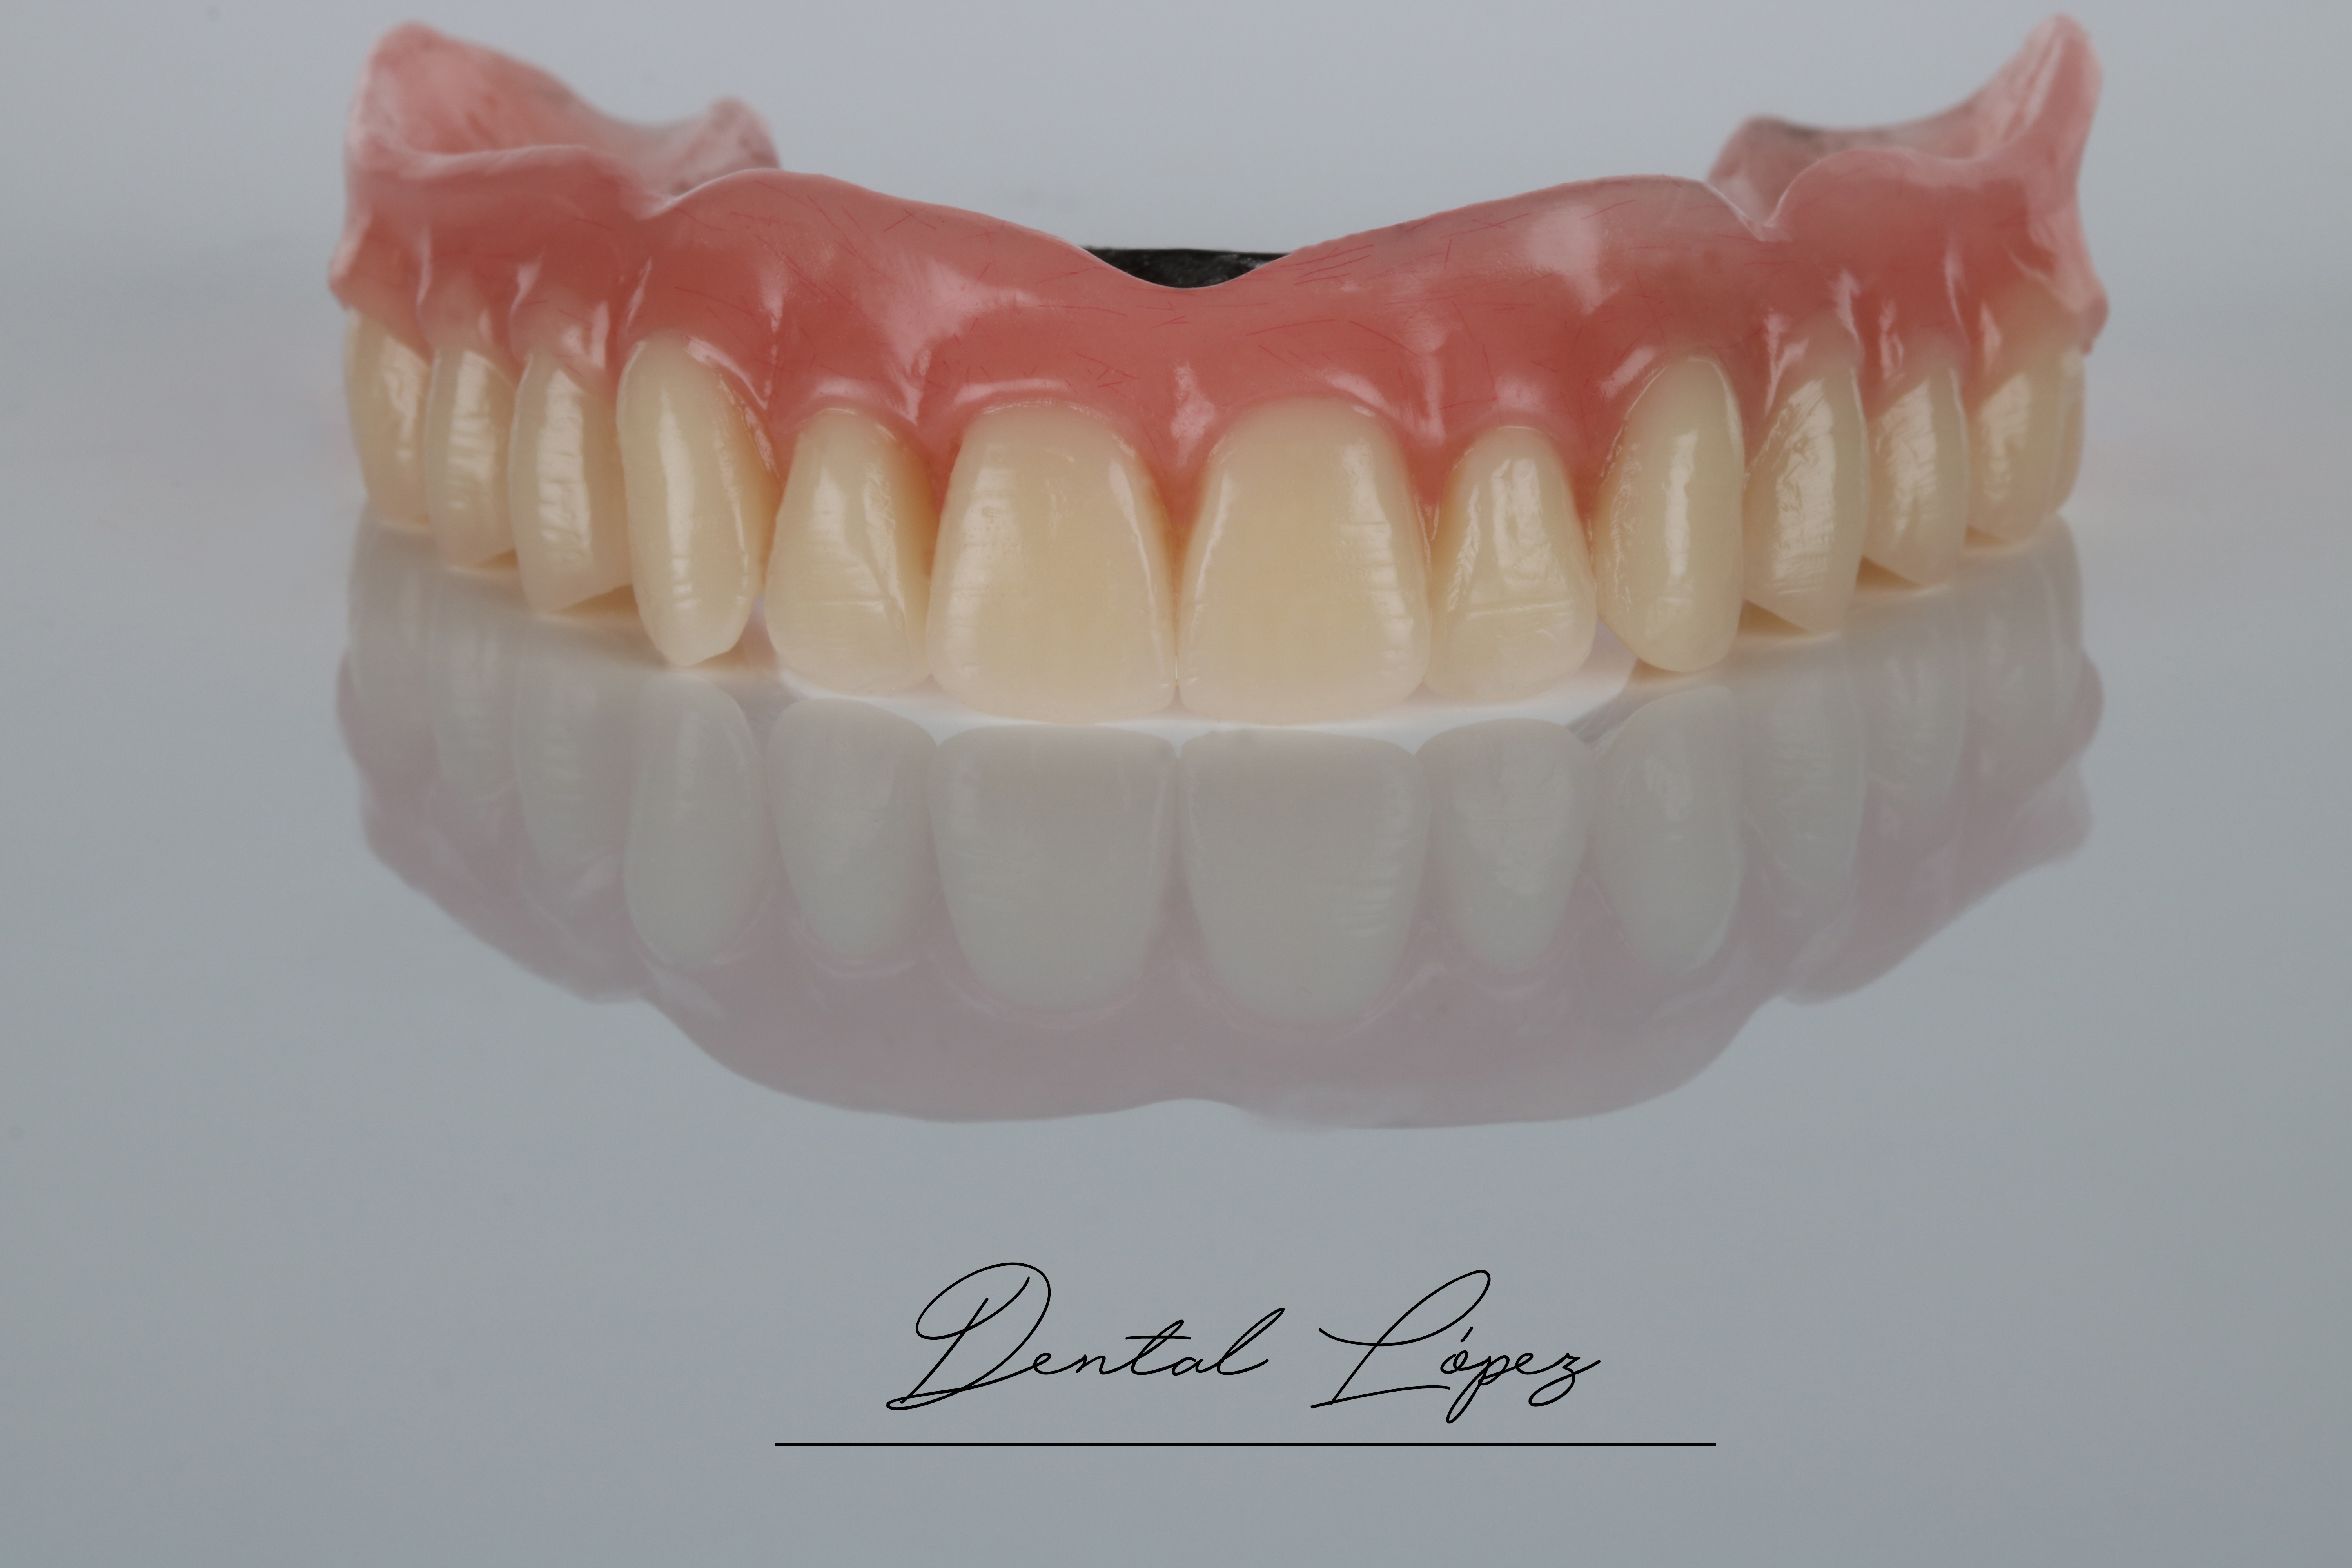 protesis_removible_dental_lopez